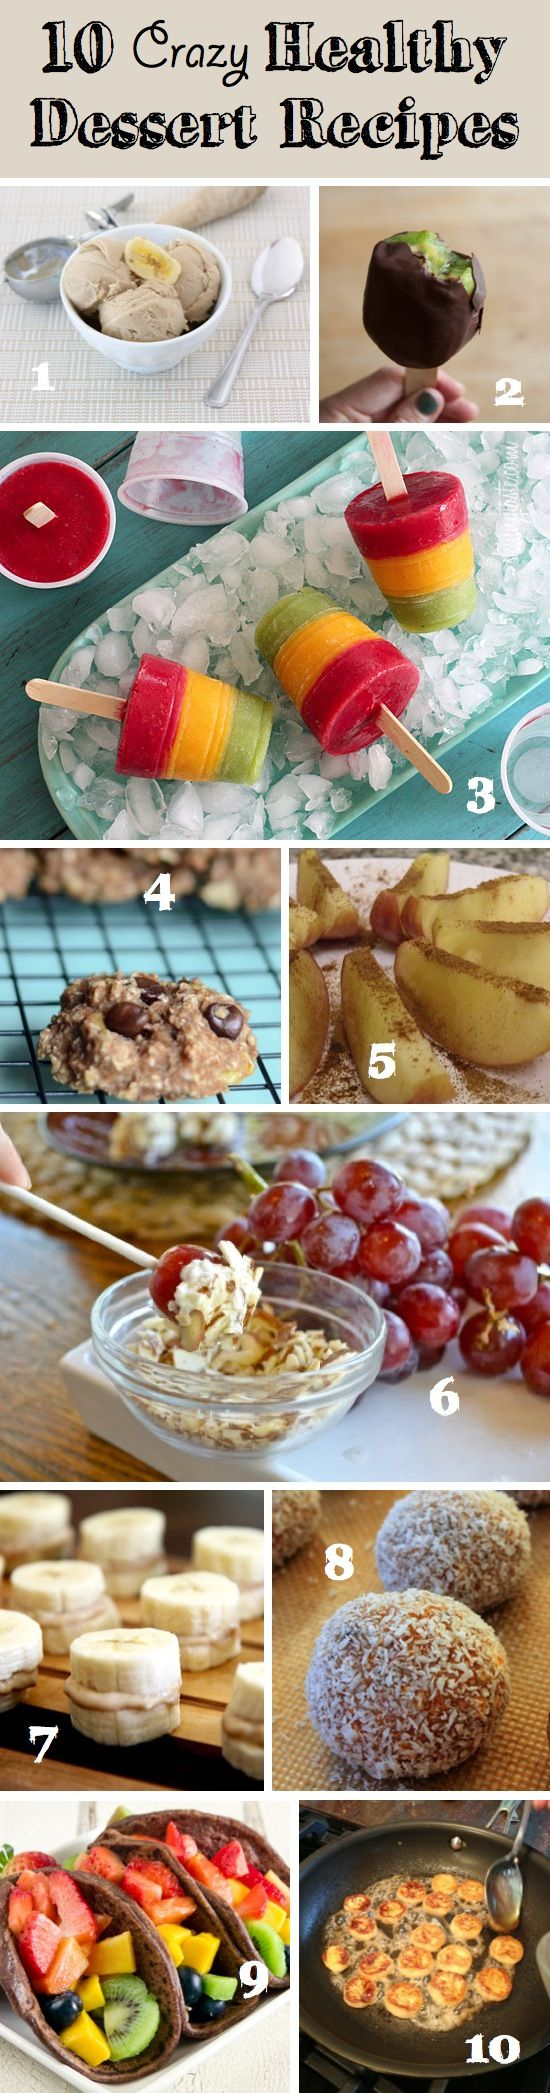 There are plenty of sweet treats that not only hit the spot, but are also close to guilt-free. Here are 10 healthy dessert ideas you can feel good about!